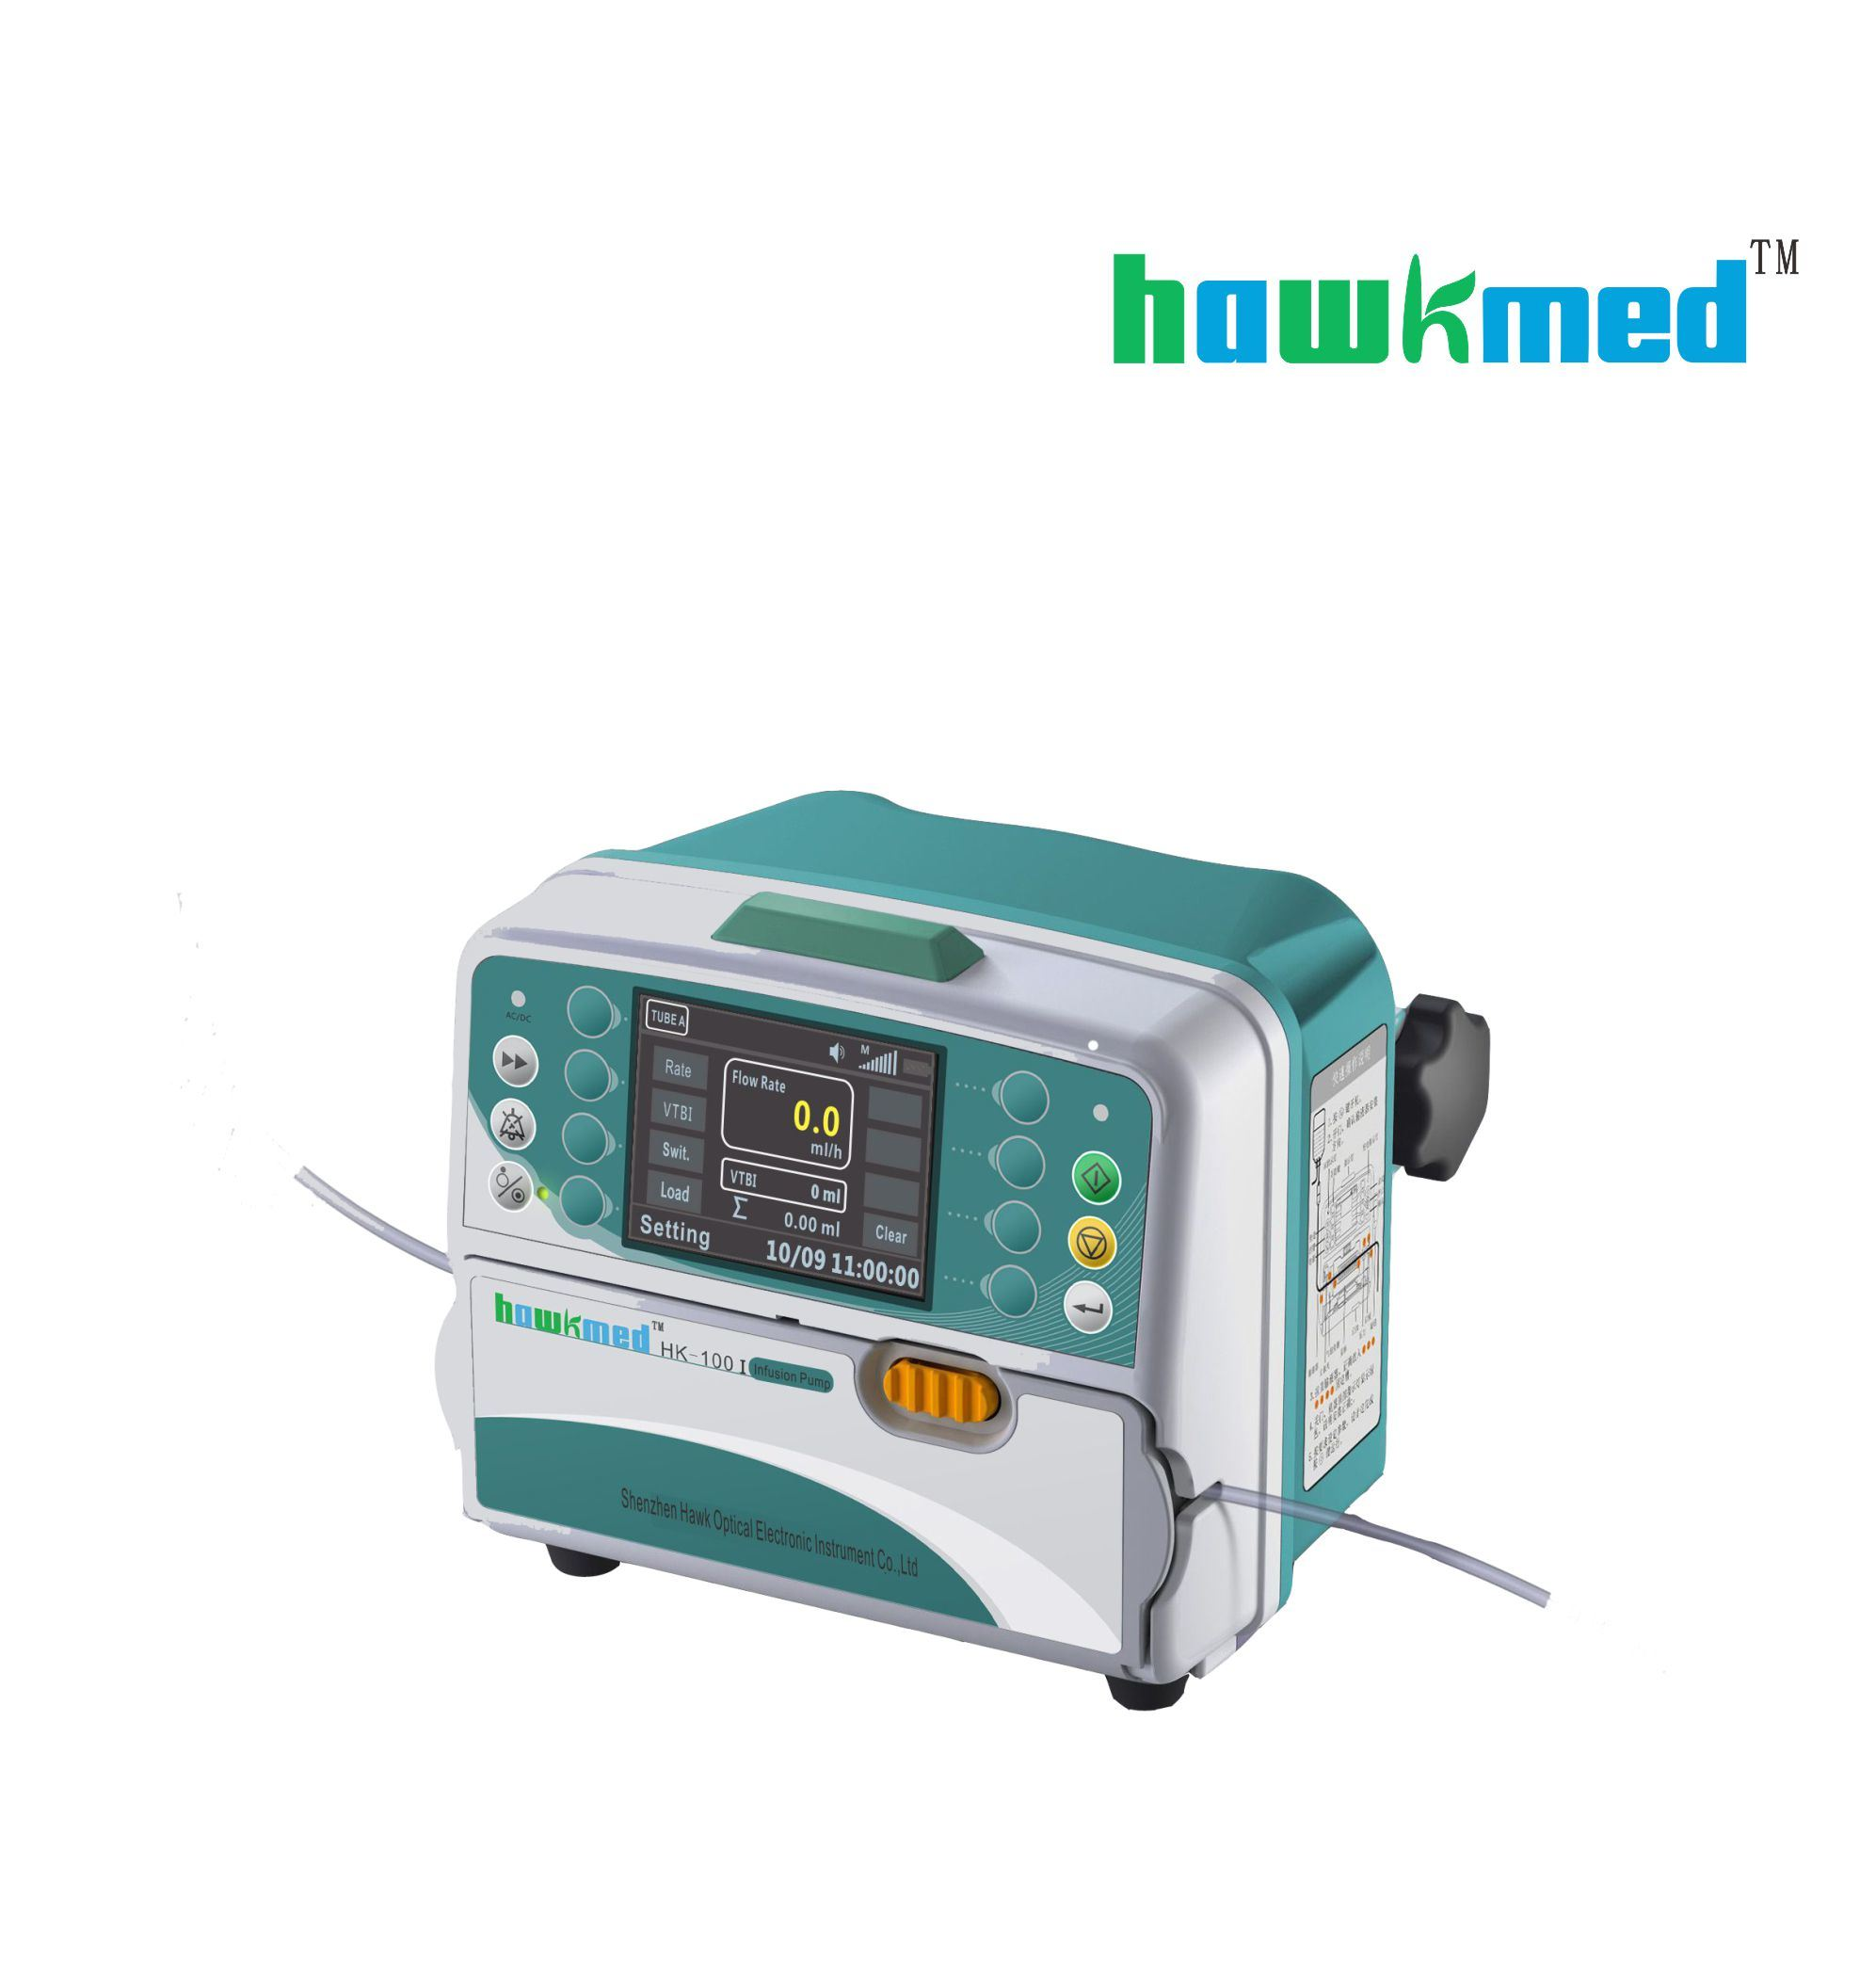 Peristalsis Volumetric Infusion Pump (HK-100I)